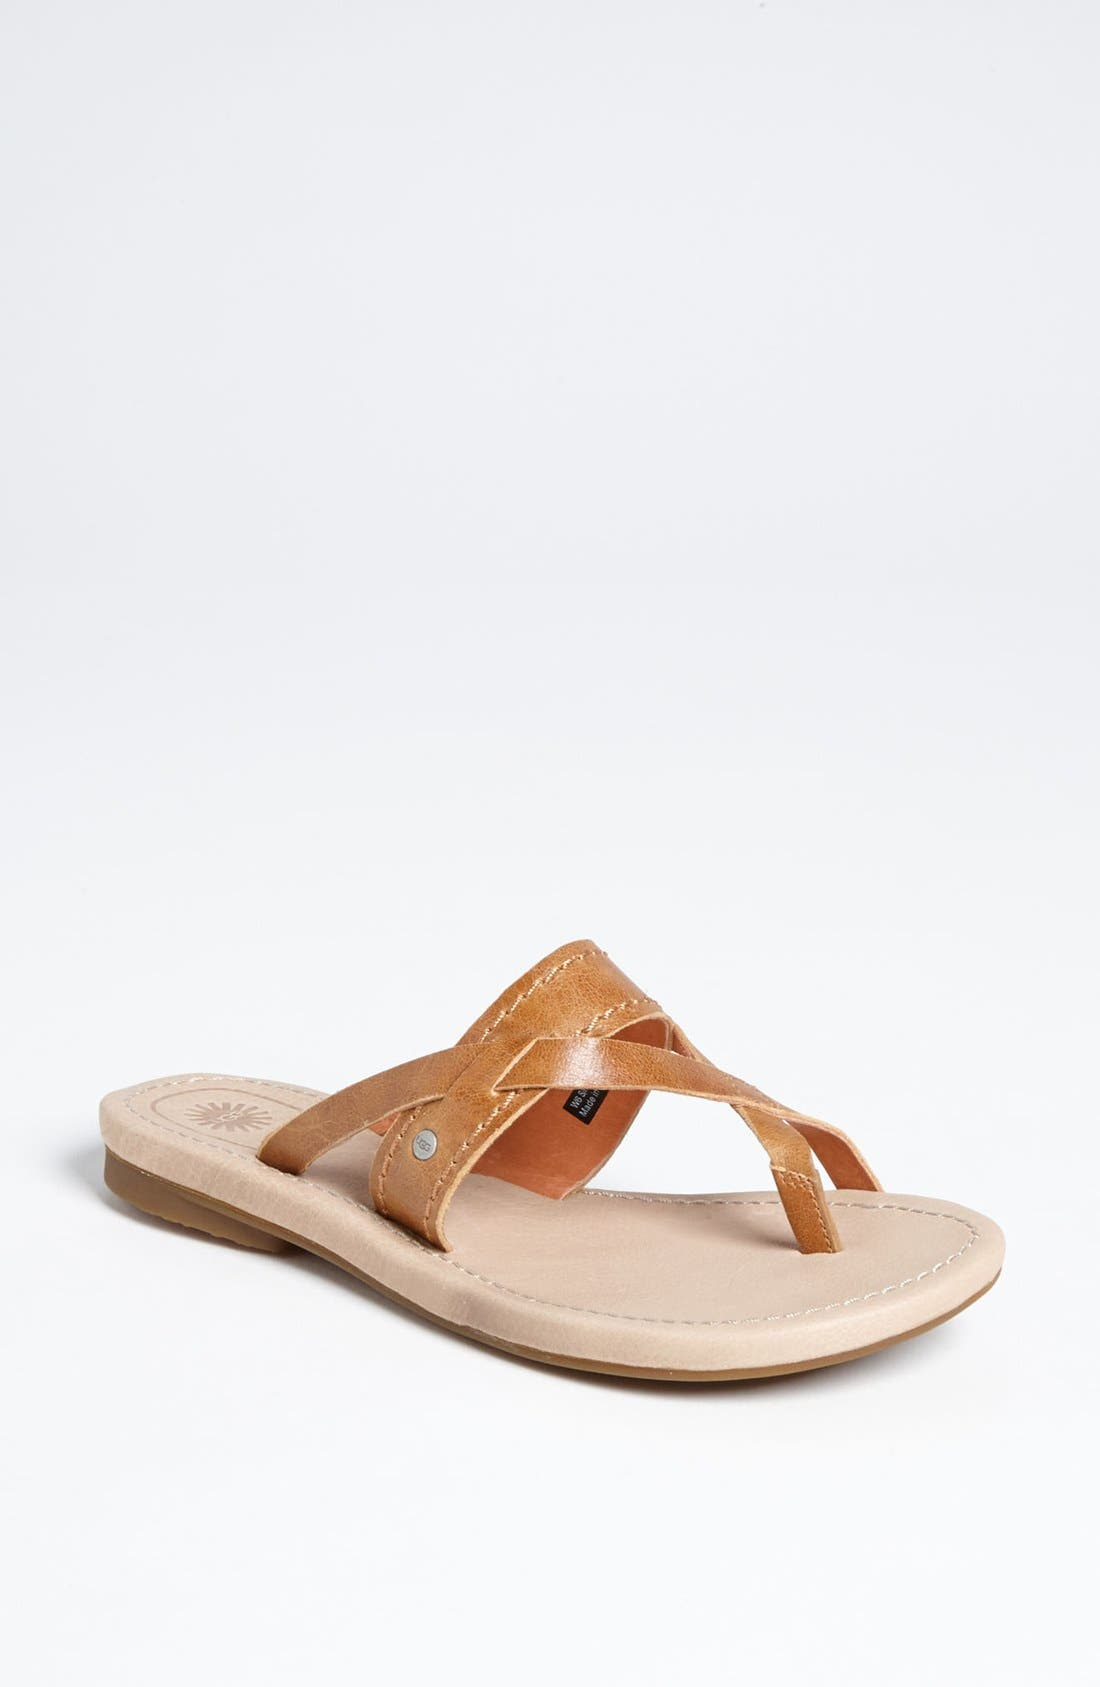 Alternate Image 1 Selected - UGG® Australia 'Mireya' Sandal (Women)